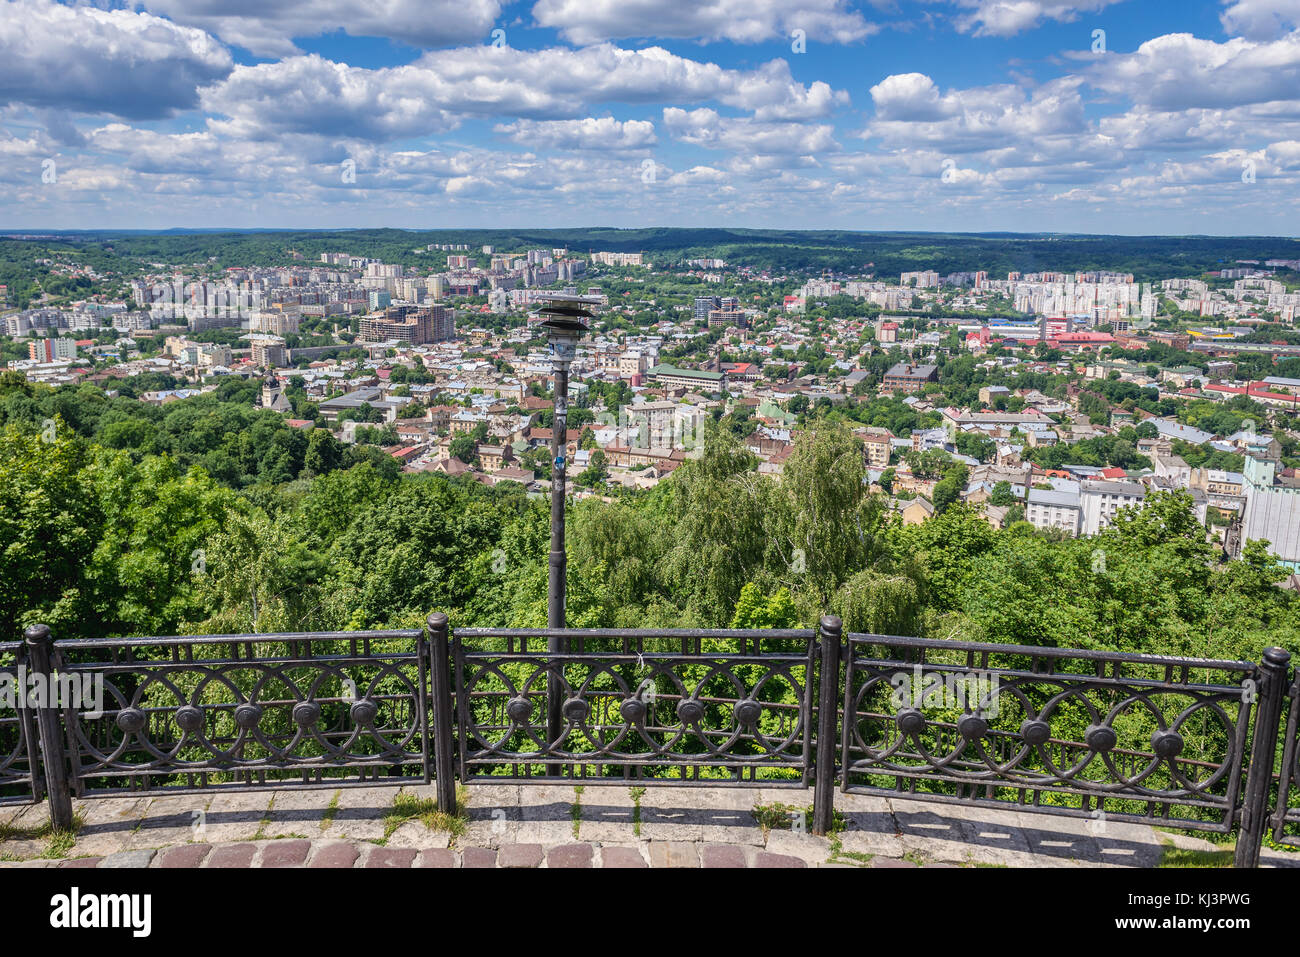 High Castle, Lviv: how to get there, history and interesting facts 25